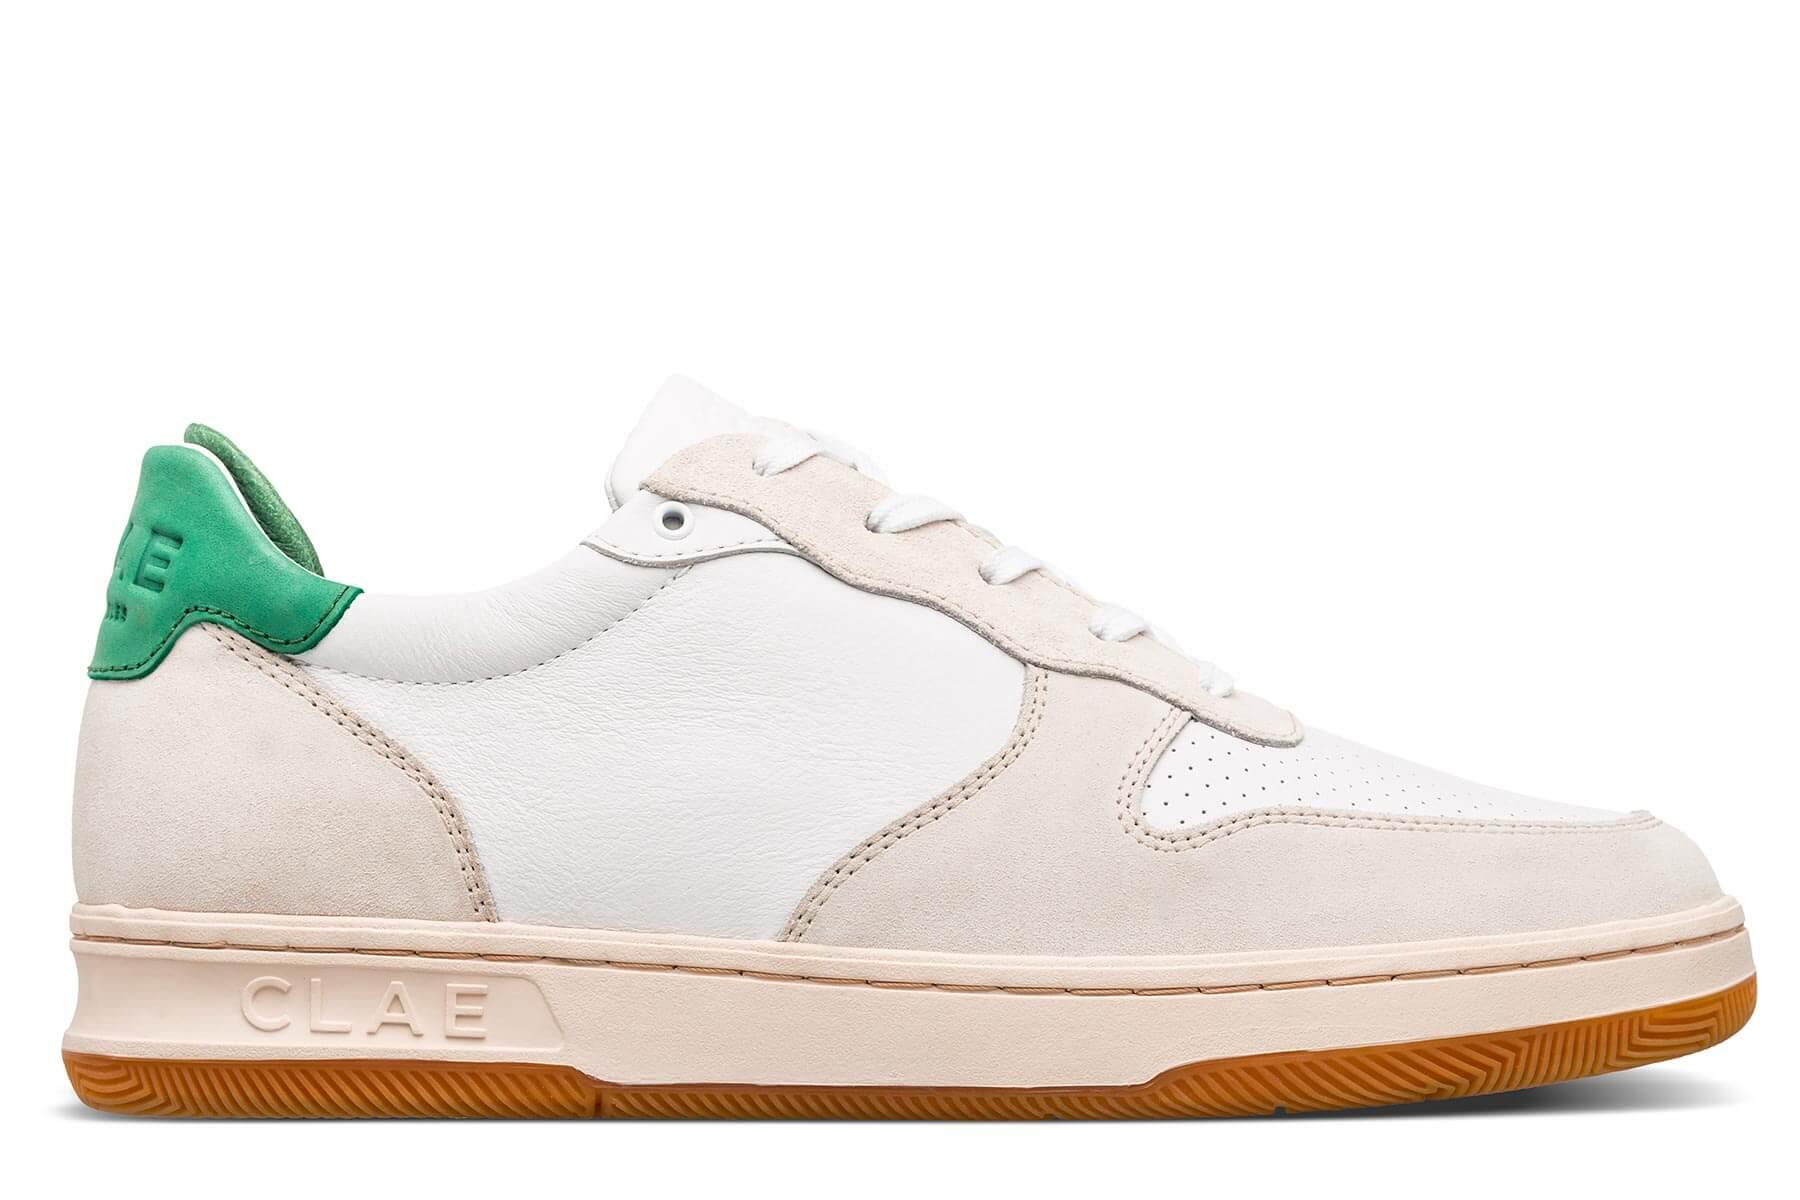 Clae Malone White Leather Smoke Comfrey Green